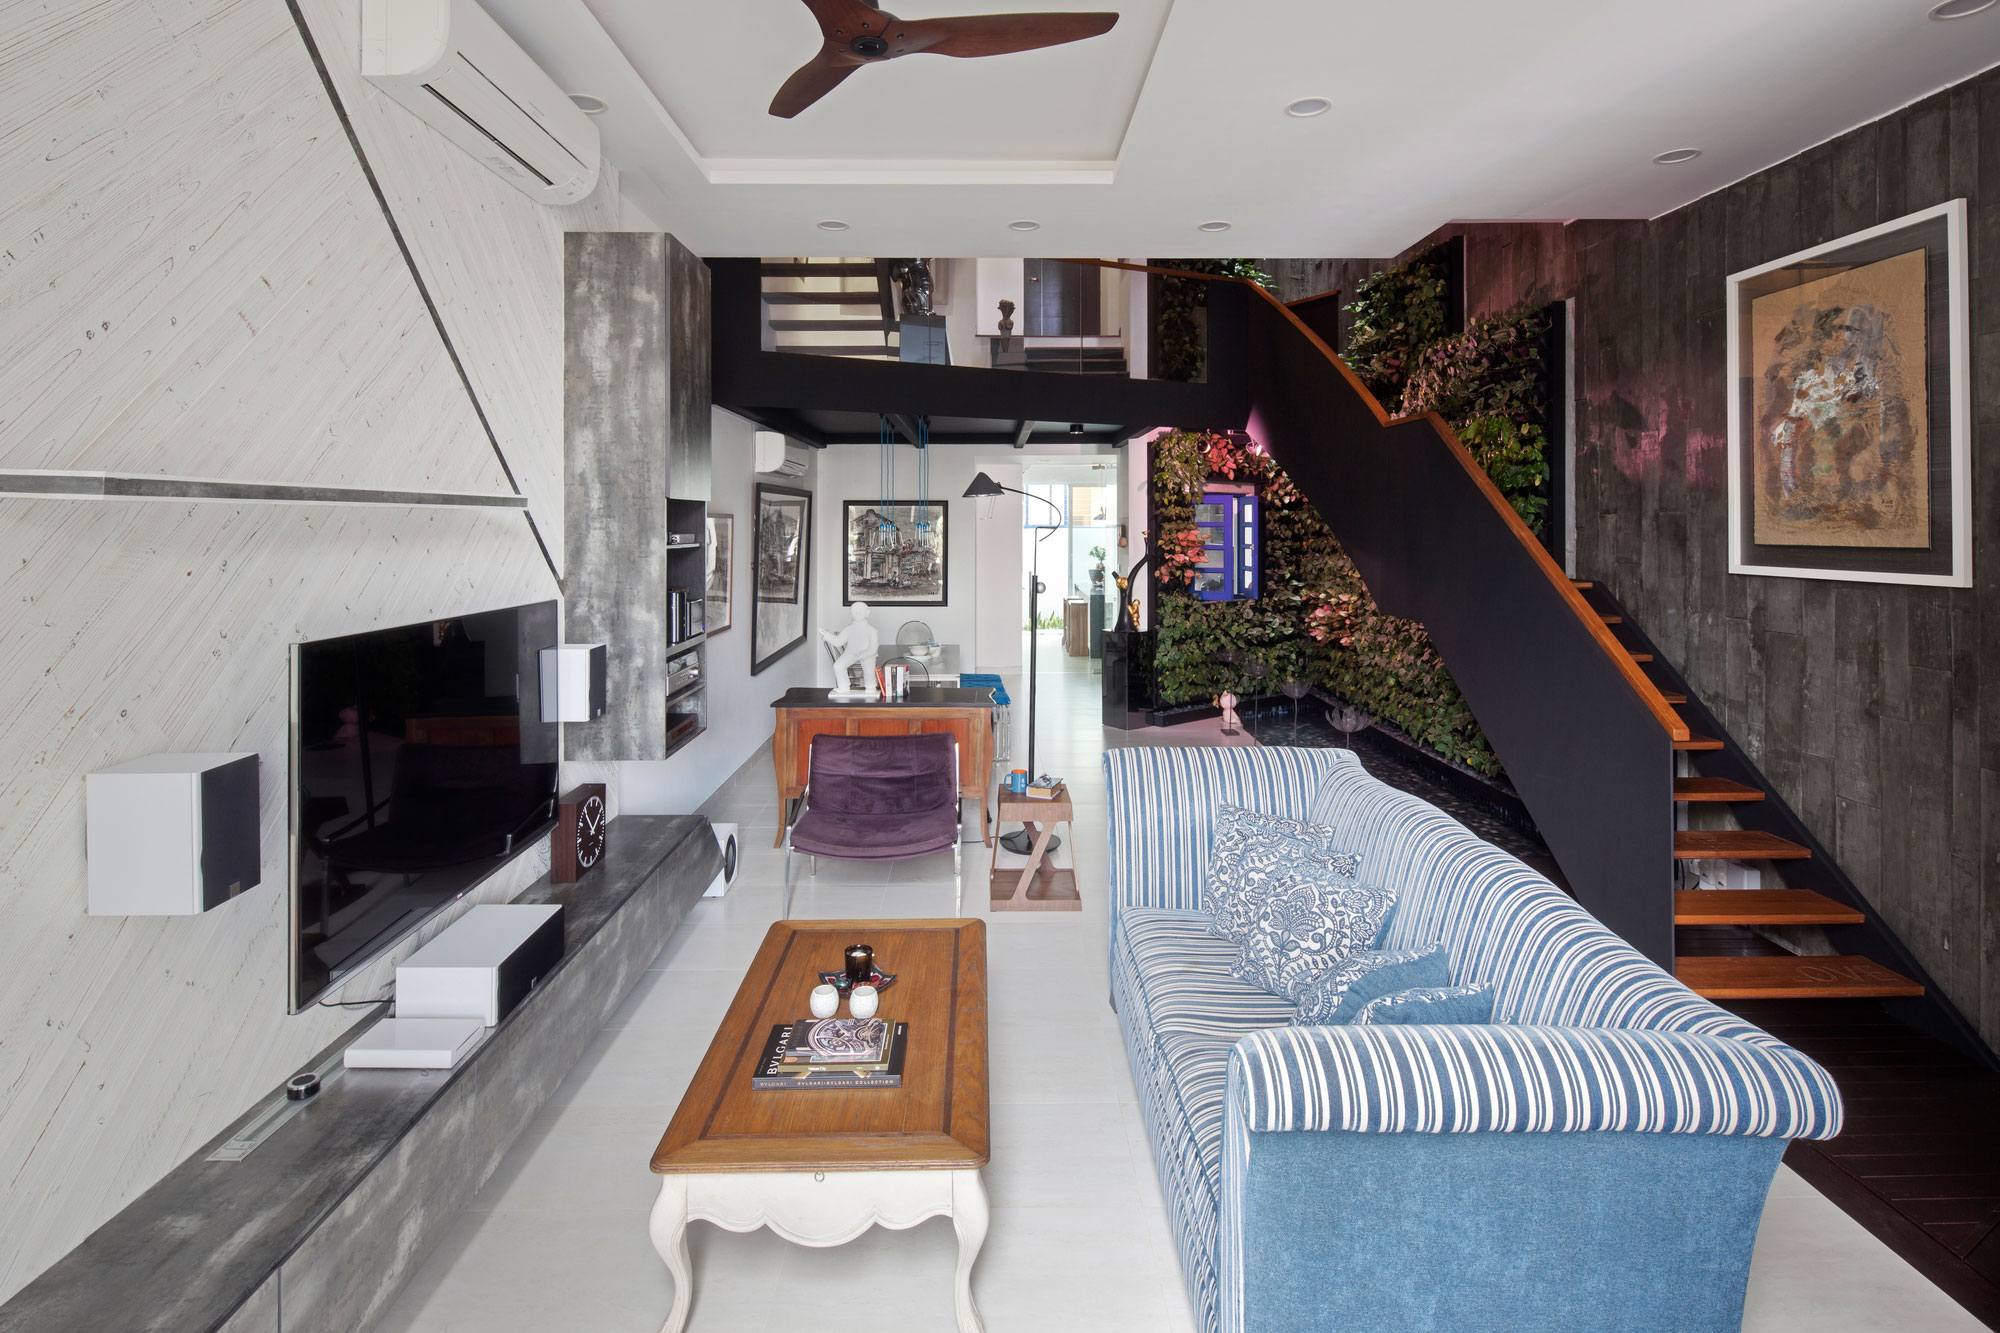 poh huat furniture. poh huat road residence by envelope architects05 furniture d